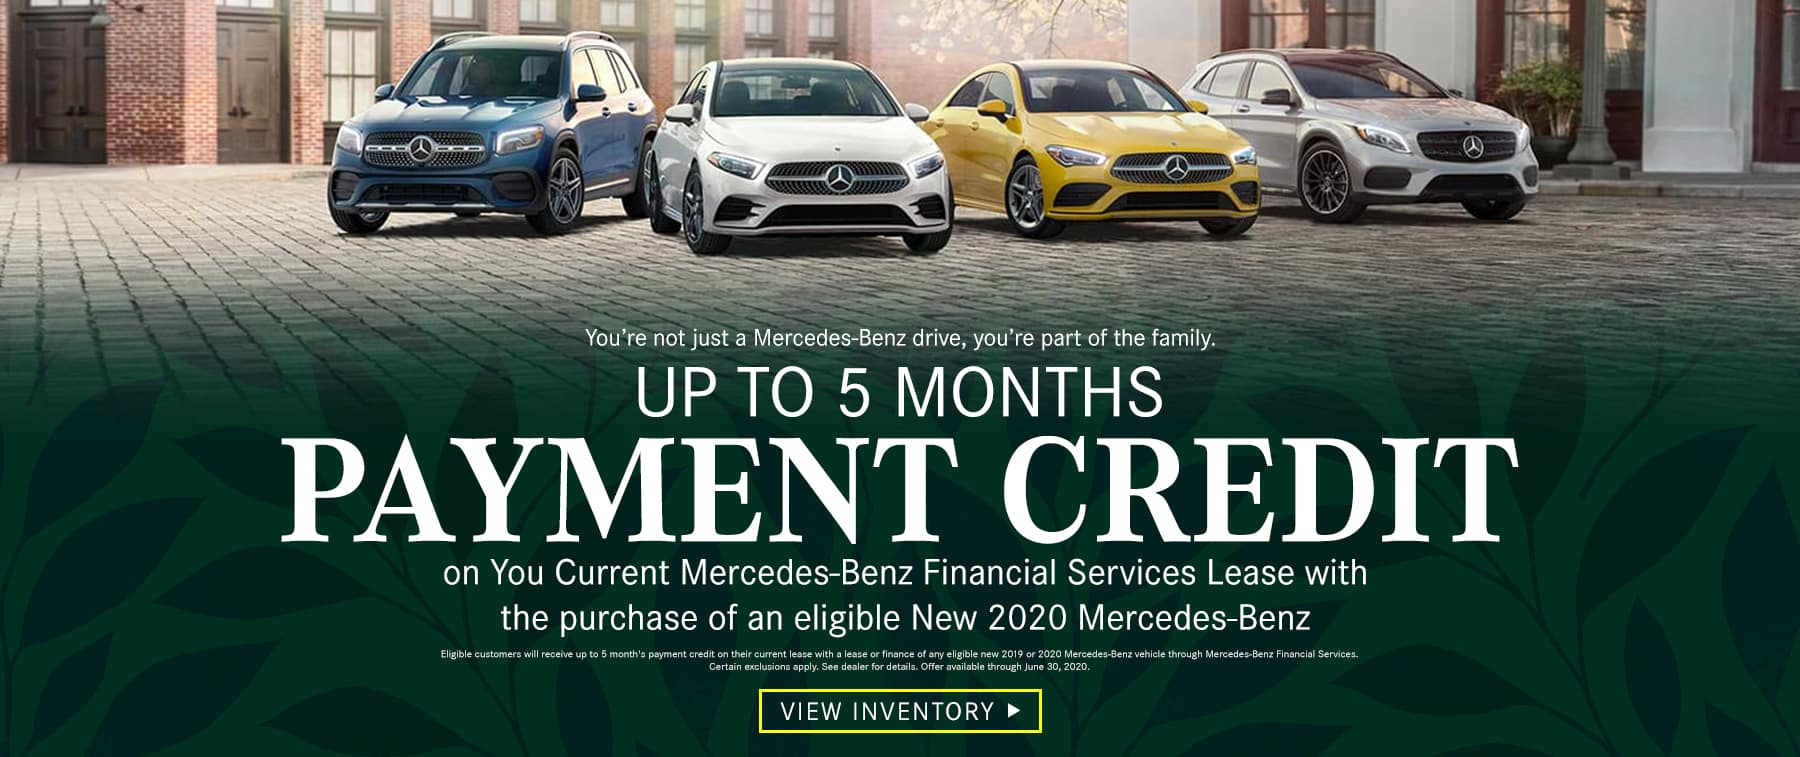 Up to 5 Months Payment Credit on You Current Mercedes-Benz Financial Services Lease with the purchase of an eligible New 2020 Mercedes-Benz